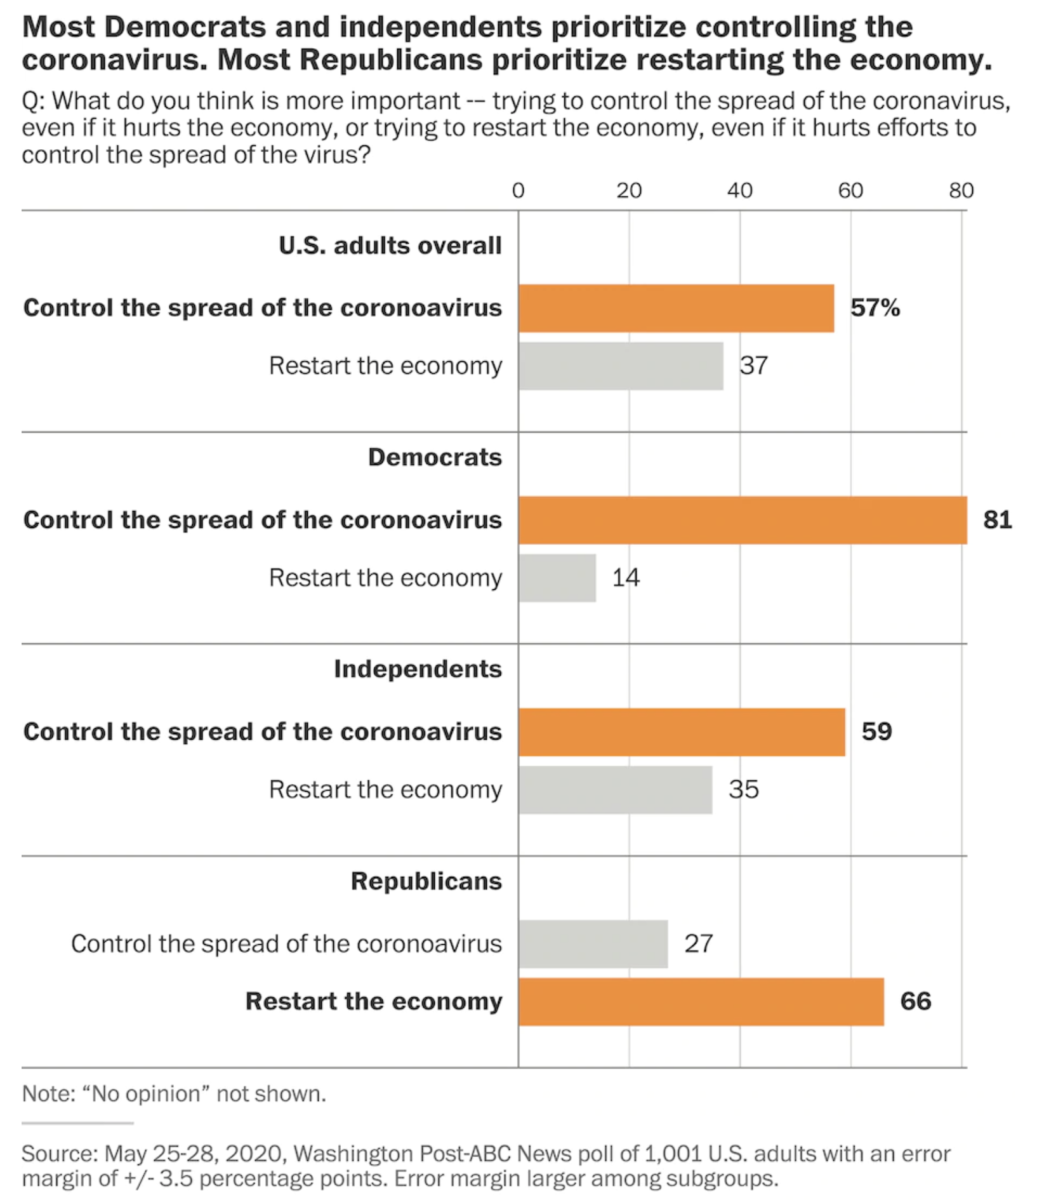 Americans Favor Controlling Outbreak Over Restarting Economy 2